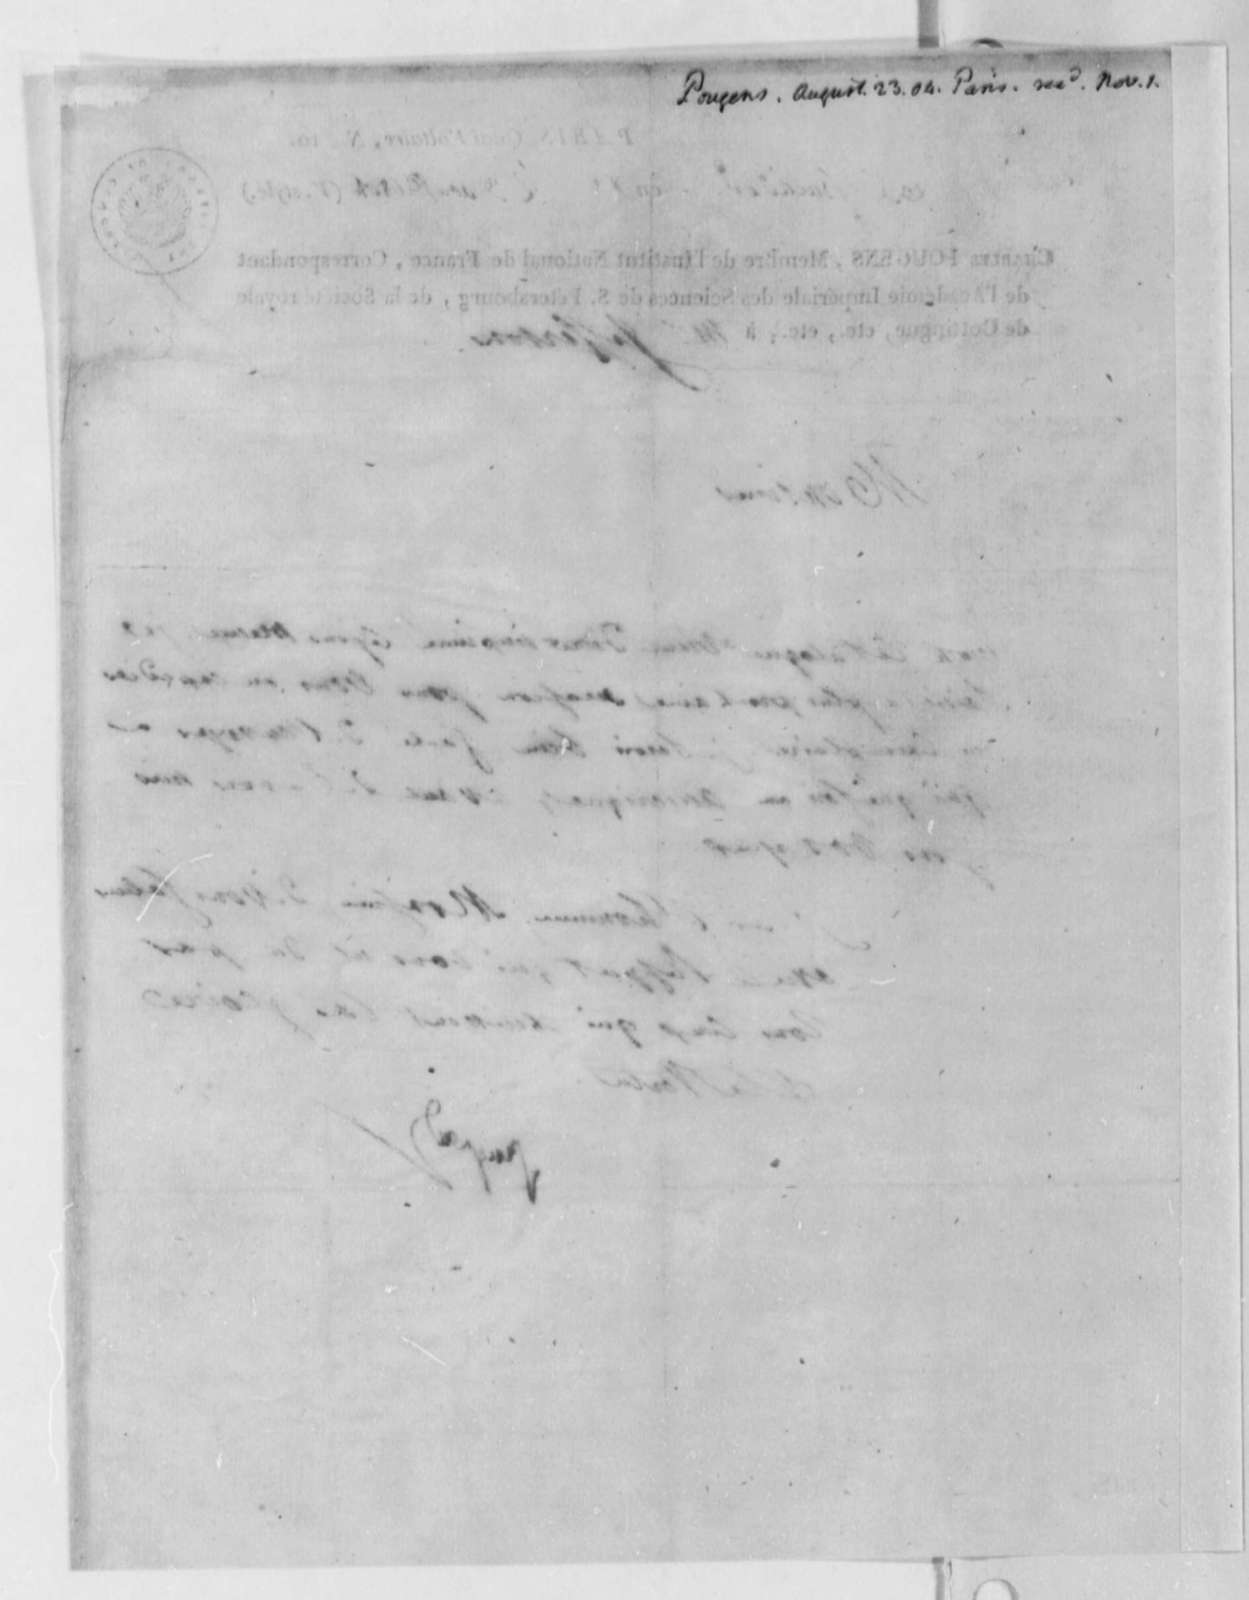 Charles de Pougens to Thomas Jefferson, August 23, 1804